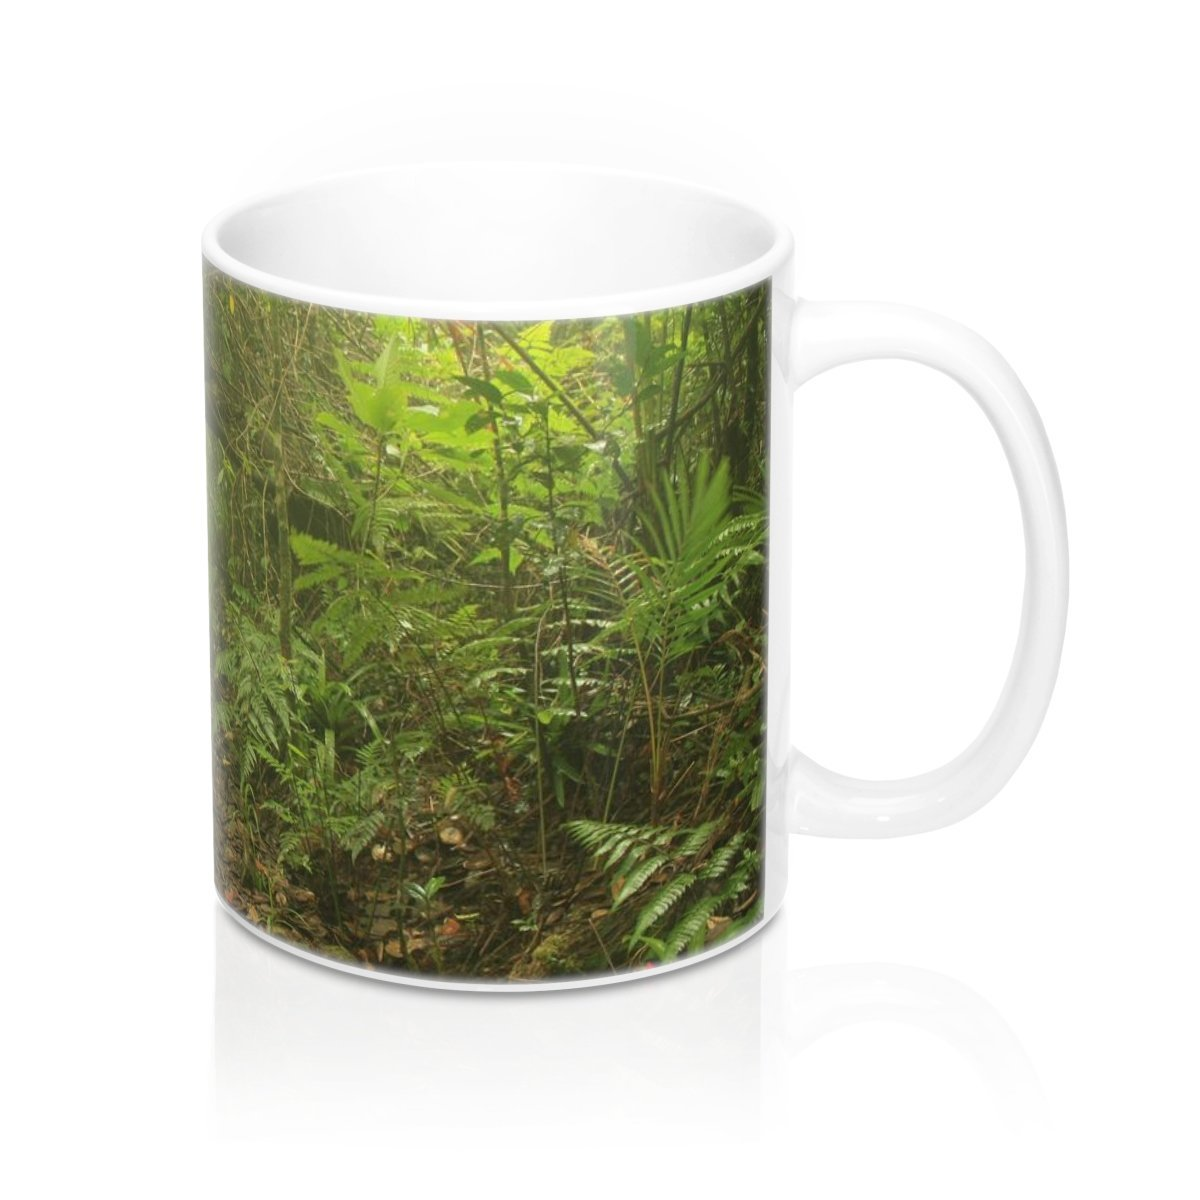 Mug 11oz - Awesome 14km Tradewinds trail full of fog - before Maria - El Yunque PR - SingleClick.store